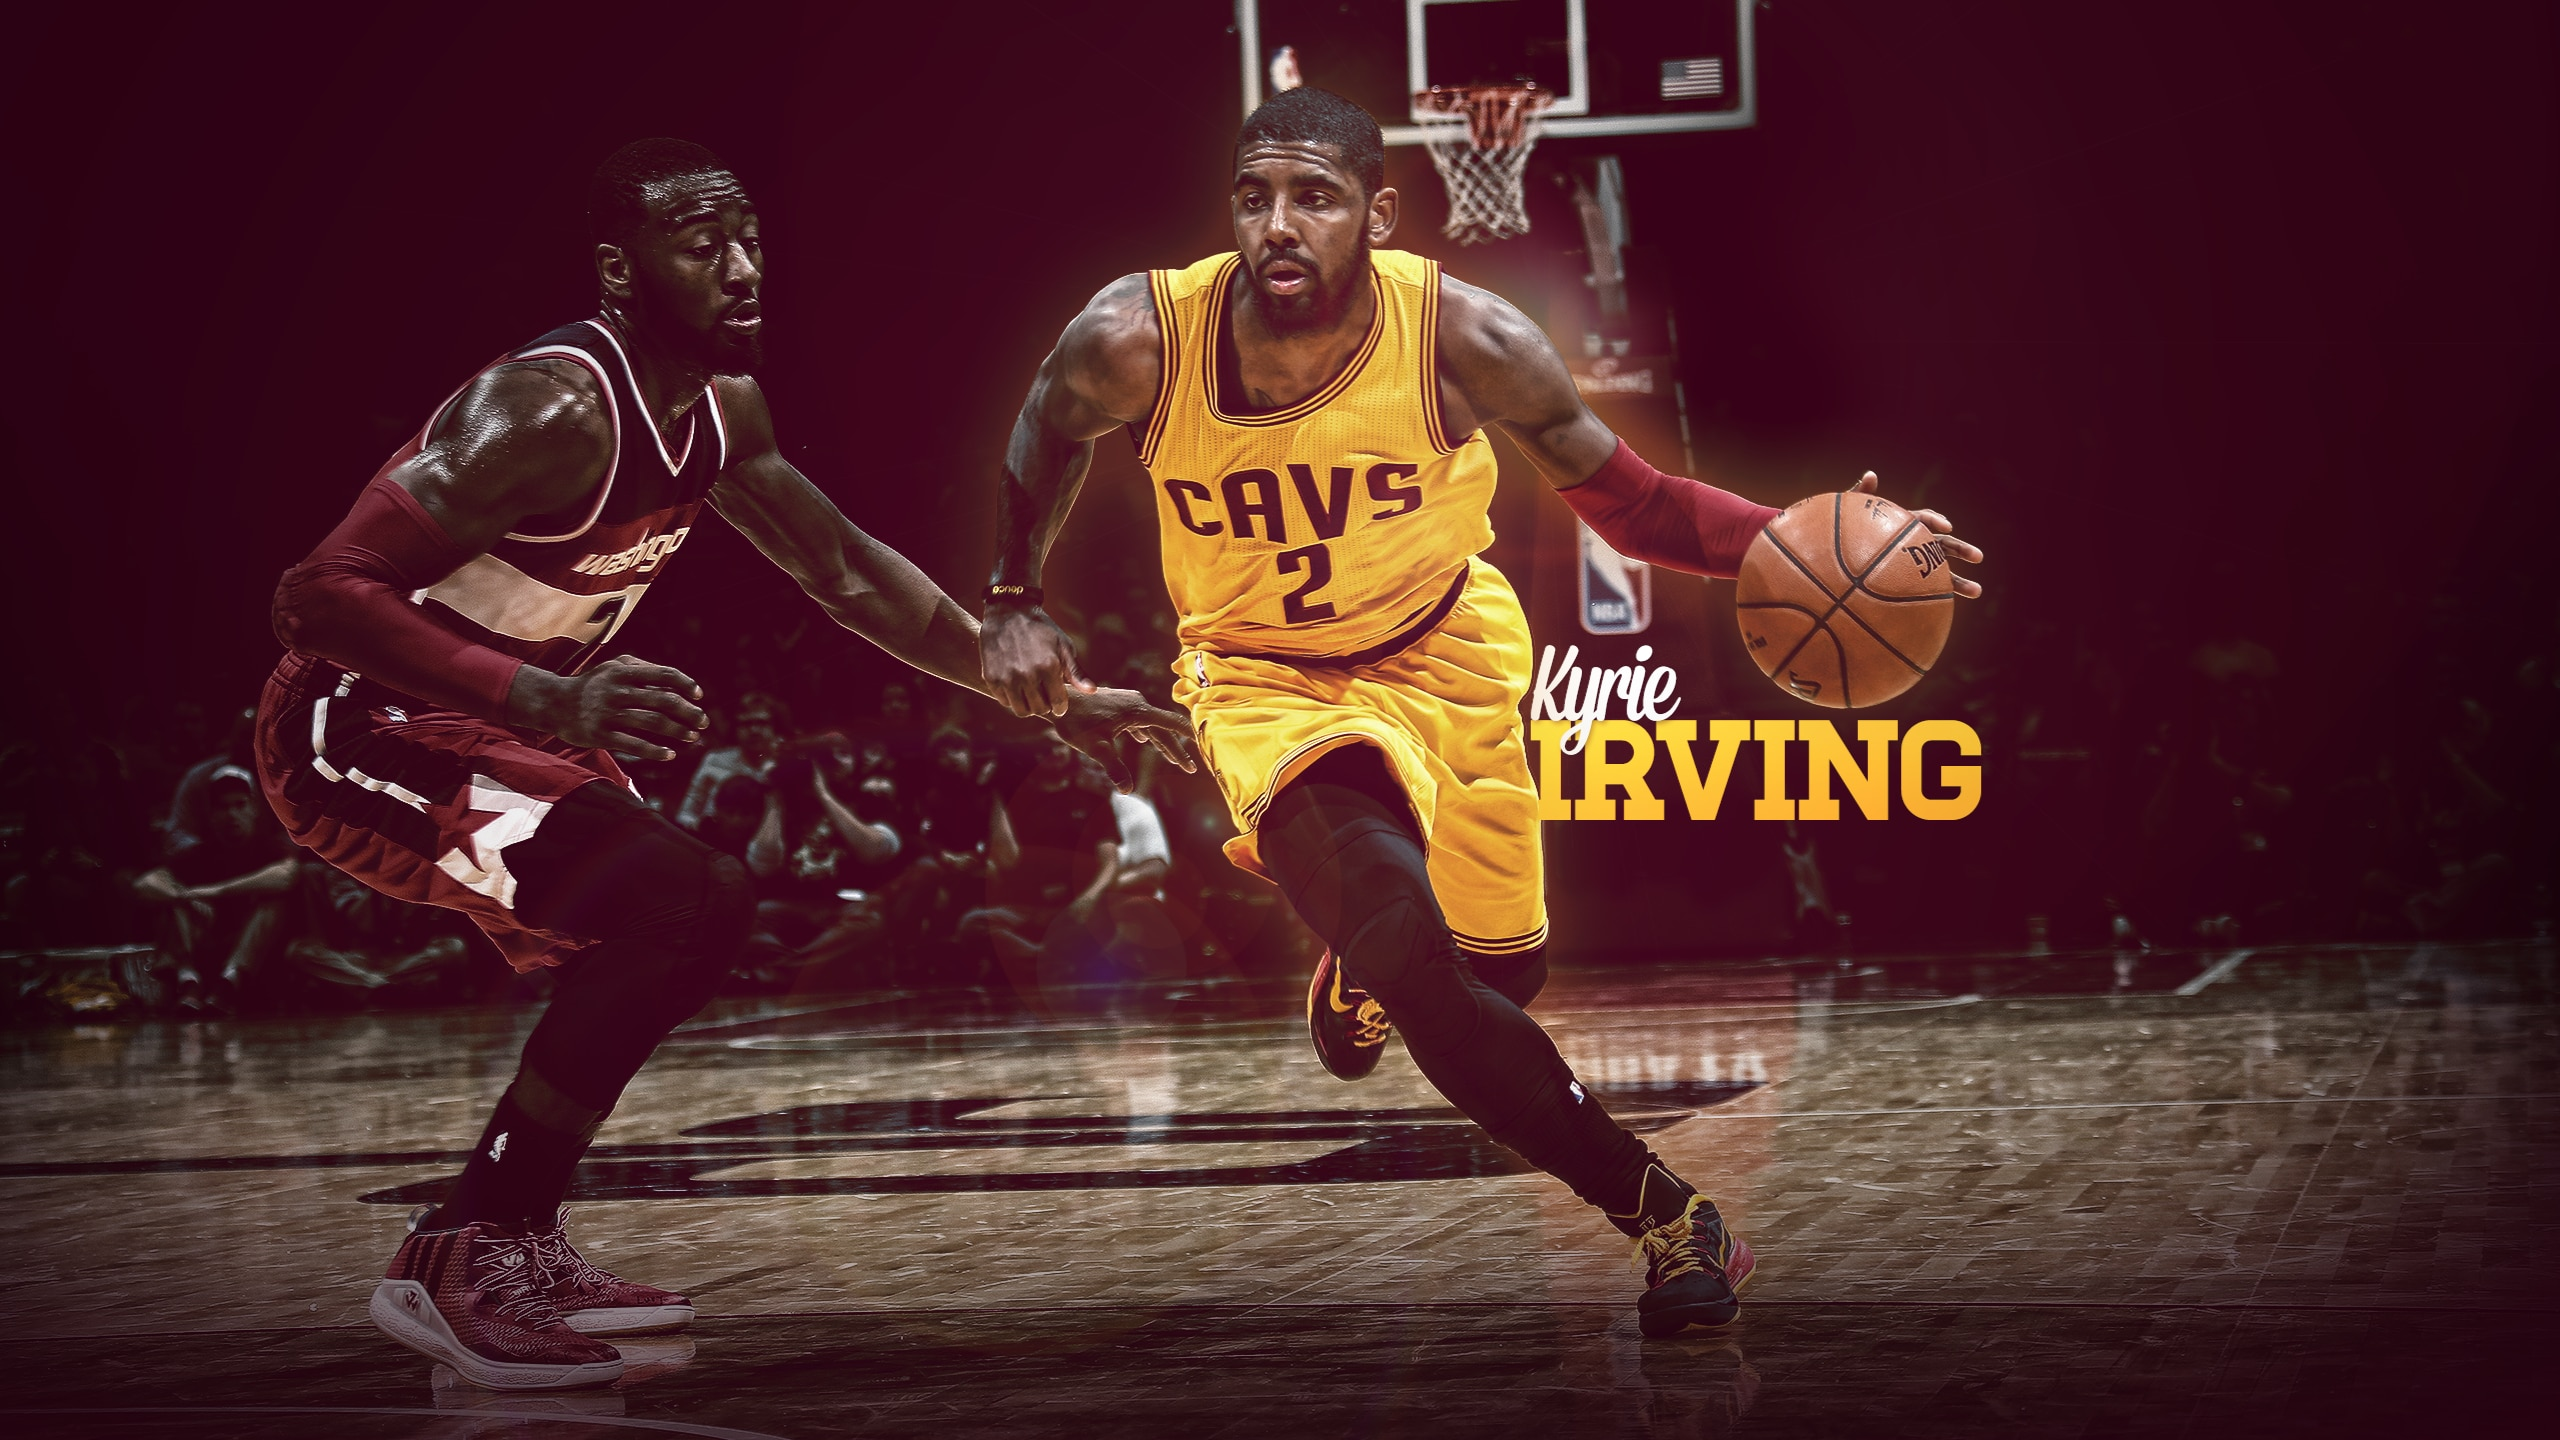 Hd Wallpapers For Mobile 1080x1920 With Quotes Fan Wallpapers Cleveland Cavaliers